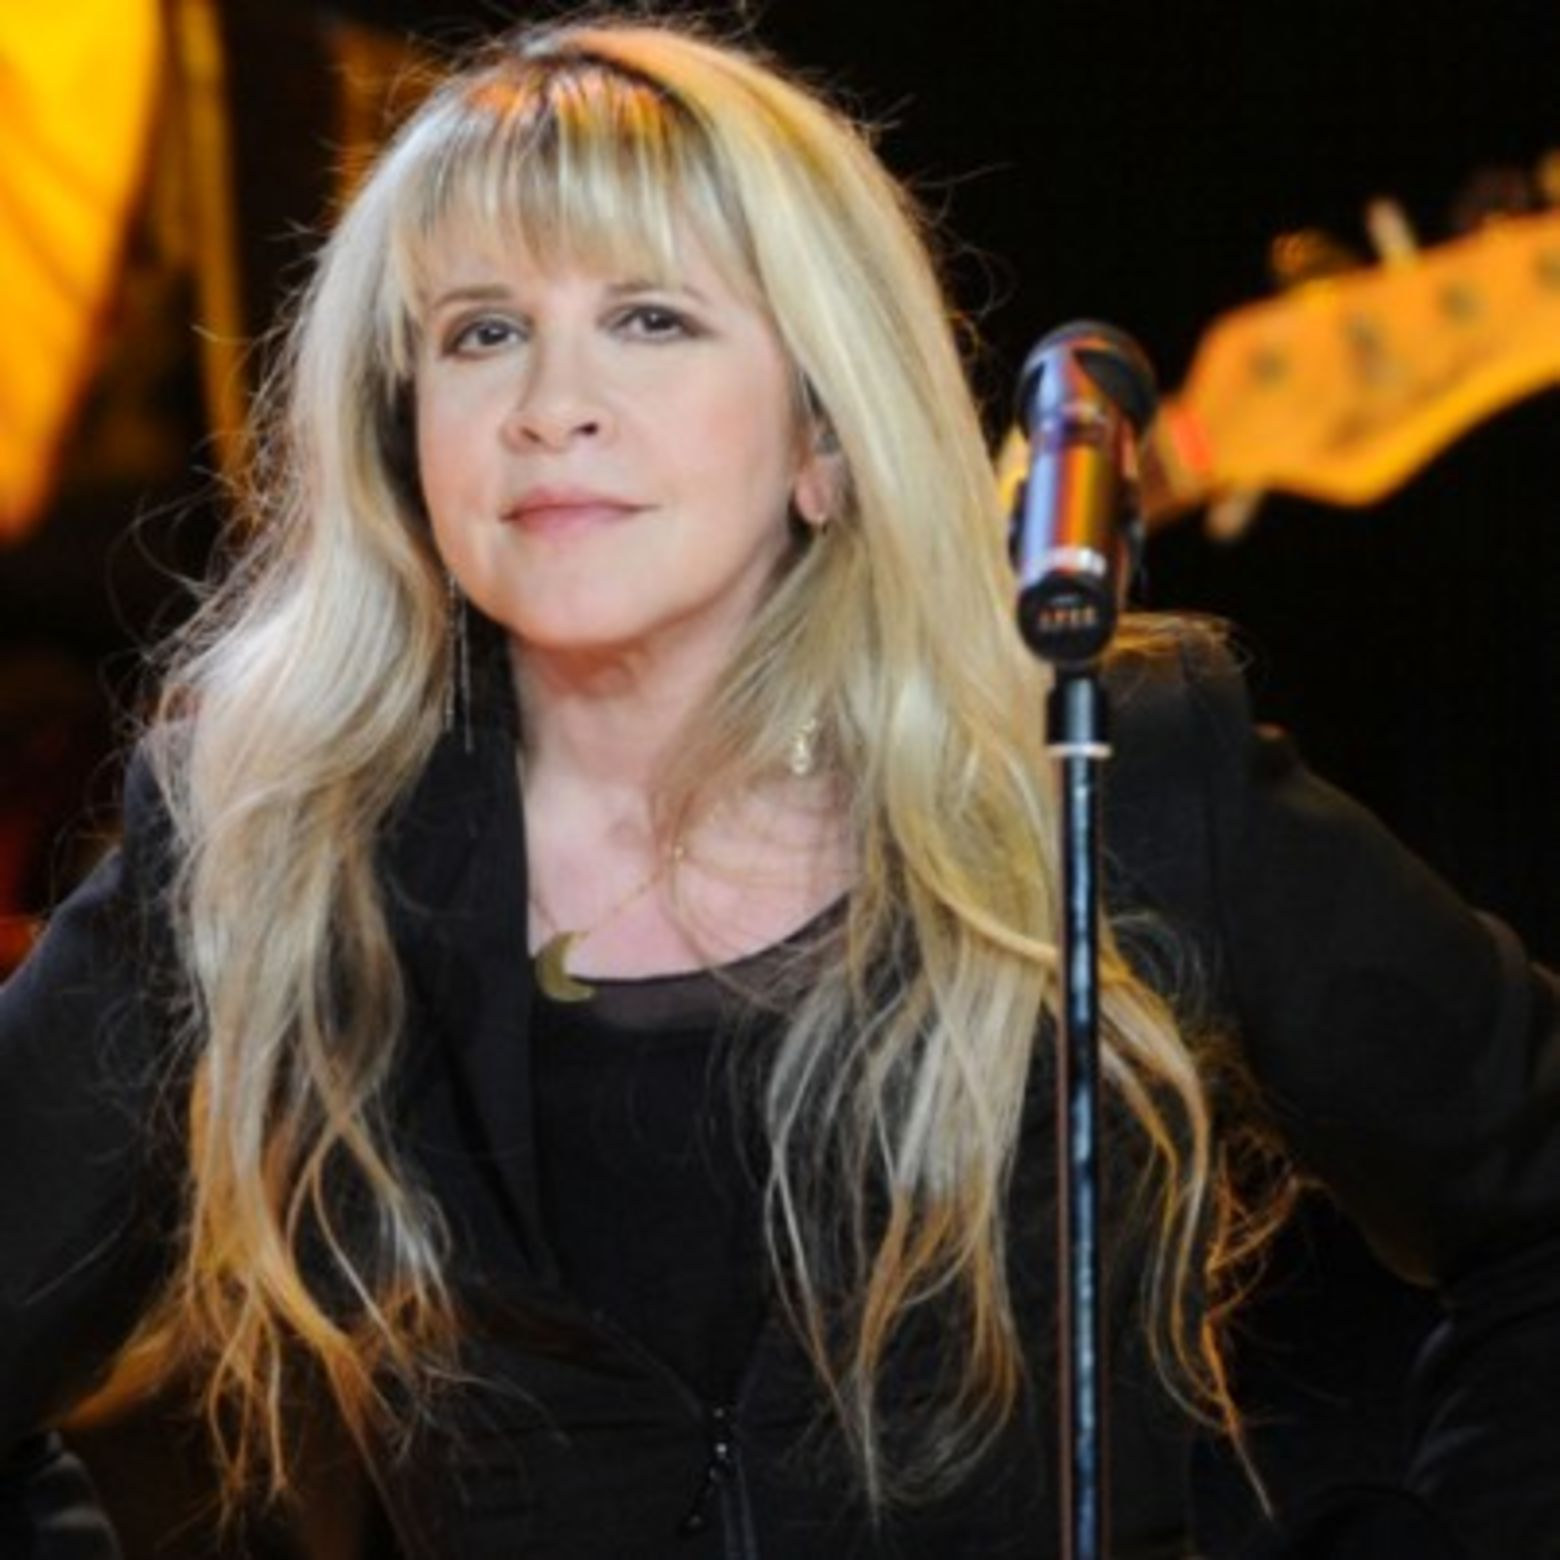 Singer and songwriter Stevie Nicks worked with Fleetwood Mac in addition to making several solo albums. Learn more at Biography.com.